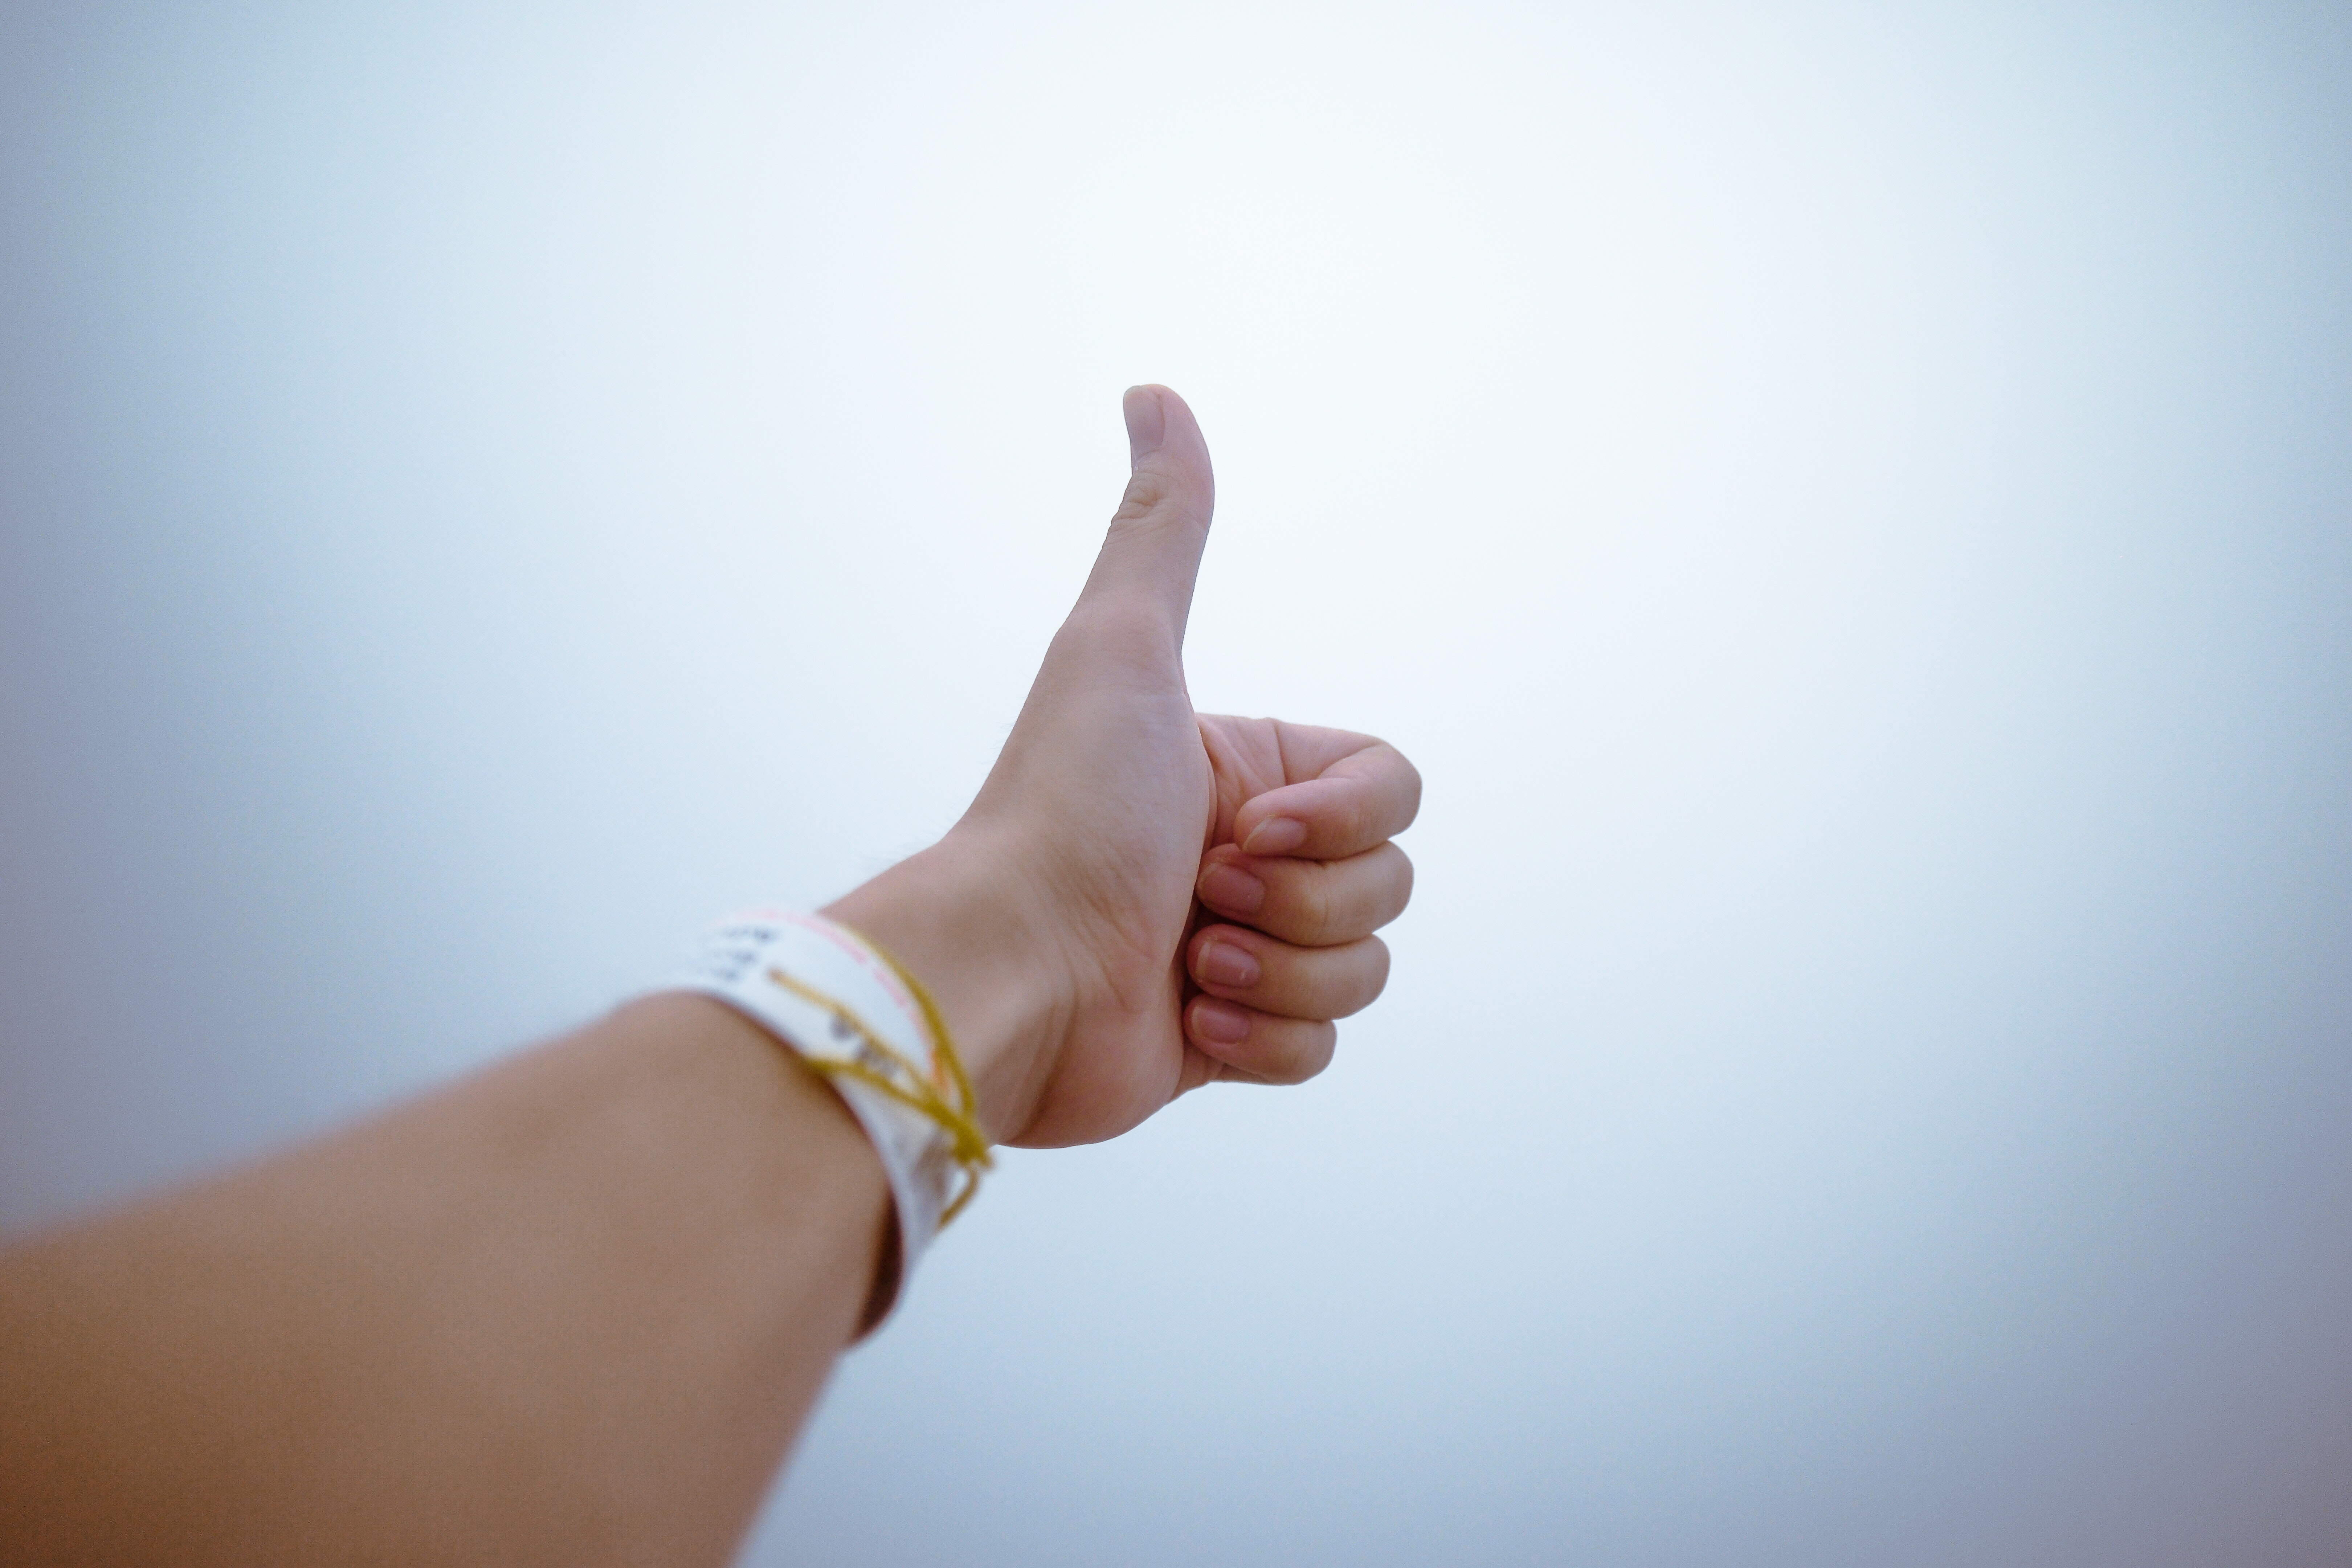 oicture of a thumbs up